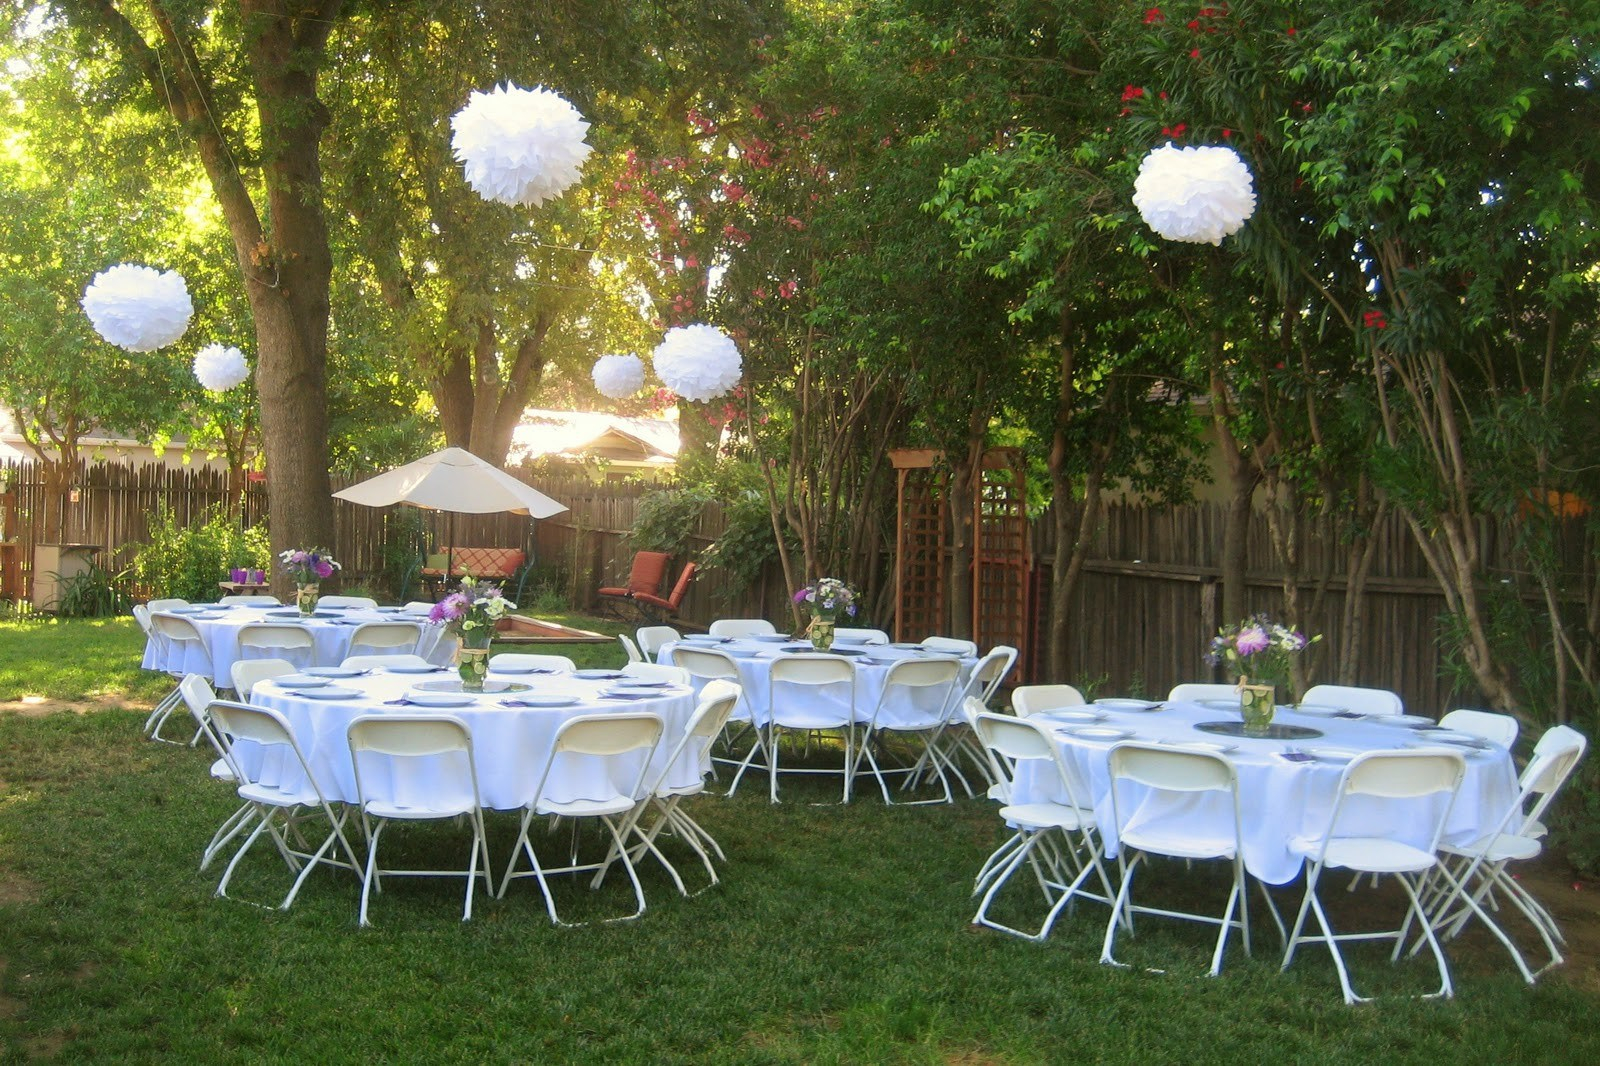 Backyard Party Ideas For Sweet 16 Militantvibes Fashion Files inside 12 Some of the Coolest Designs of How to Build Sweet 16 Backyard Party Ideas